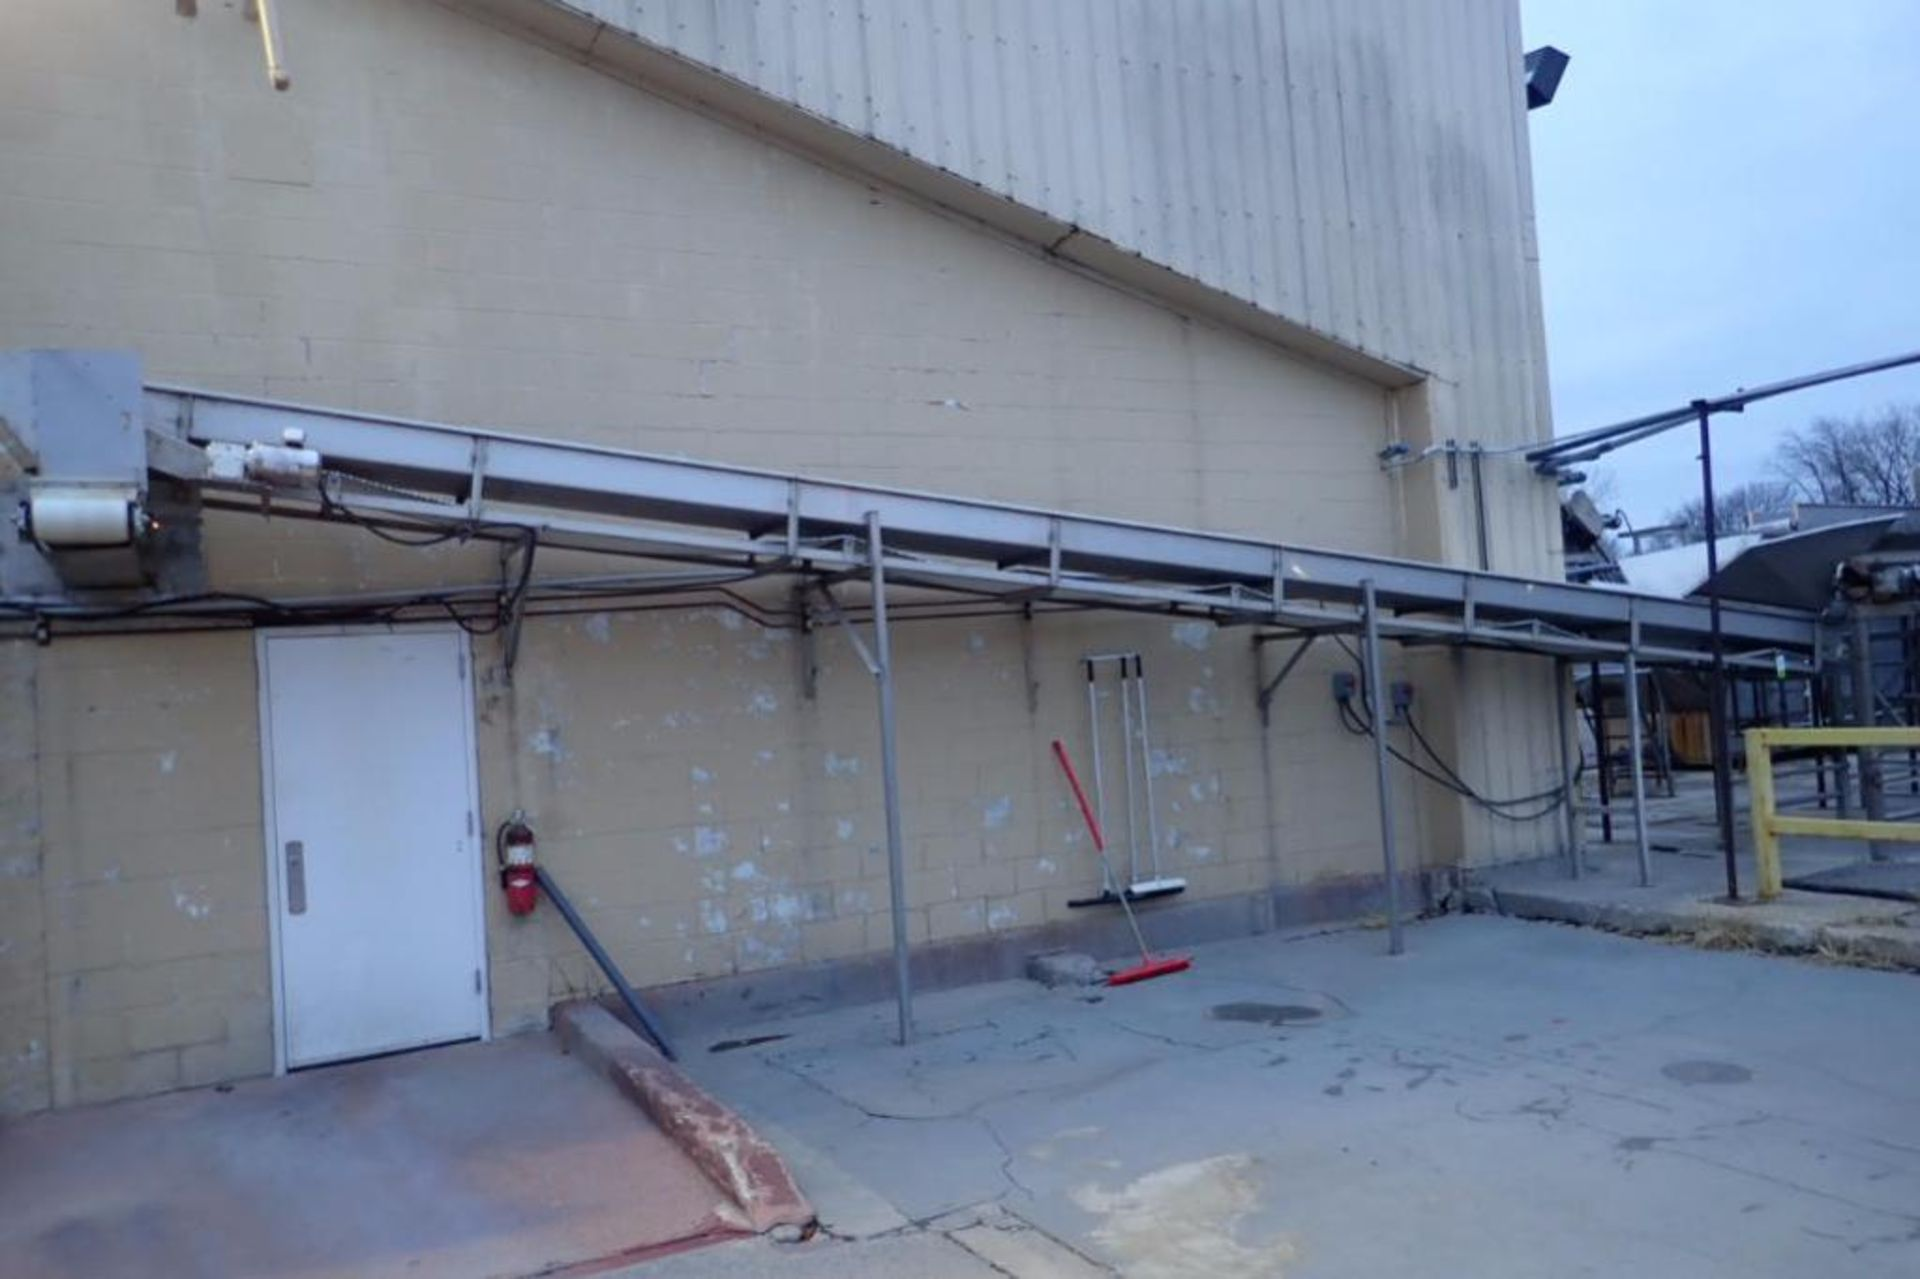 Incline conveyor, 35 ft. long x 24 in. wide x 60 in. infeed x 108 in. discharge, SS frame, motor and - Image 3 of 5